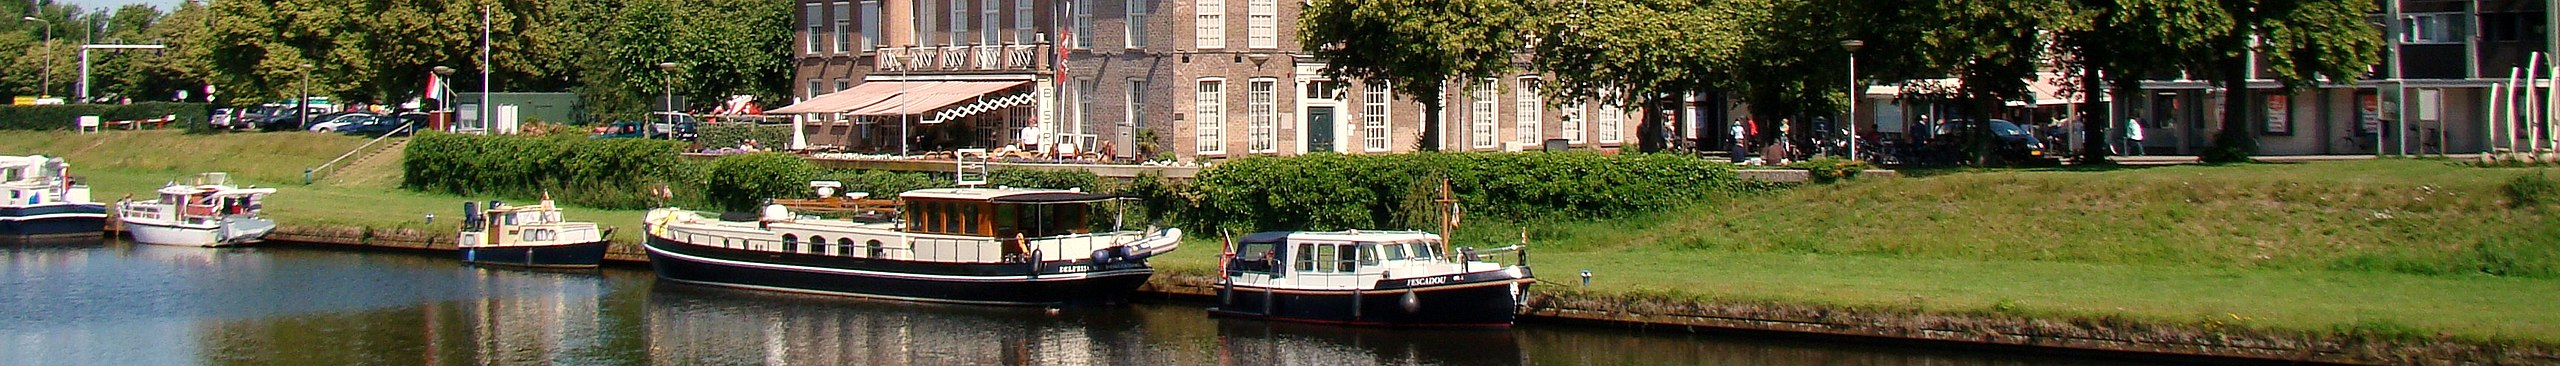 Van Ommen Kampen Ommen Travel Guide At Wikivoyage